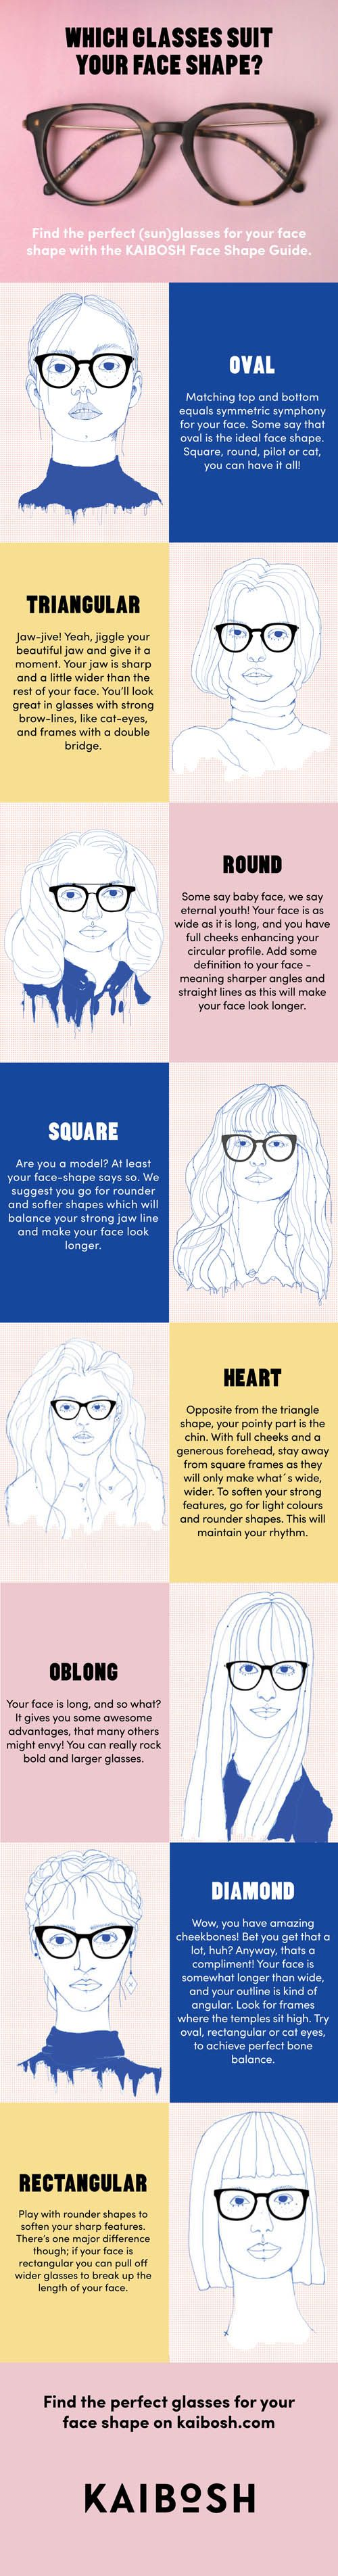 KAIBOSH | Face Shape Guide for Glasses | Shop glasses now on www.kaibosh.com